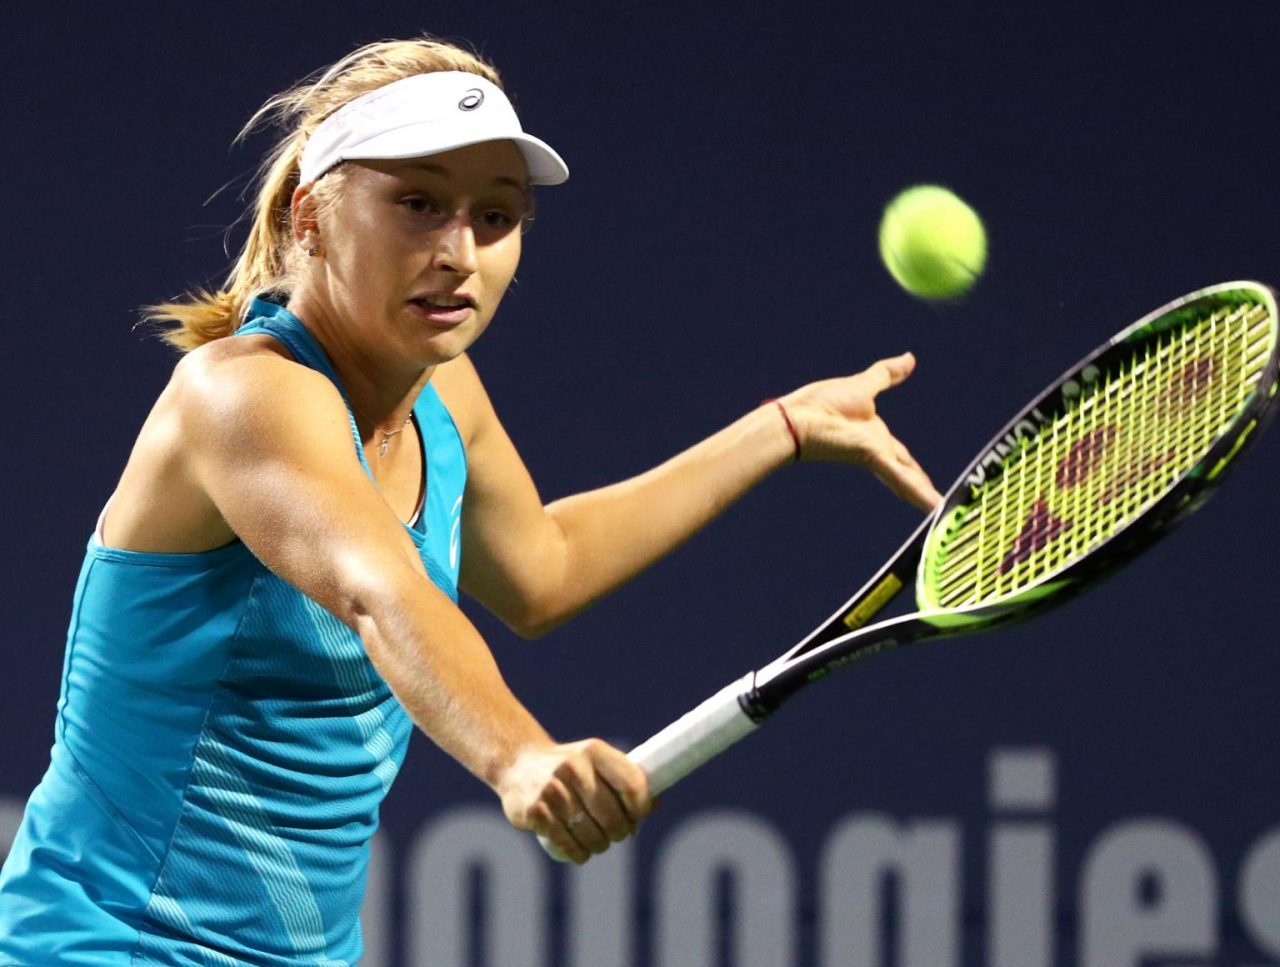 WTA - SINGLES: Charleston (USA), clay